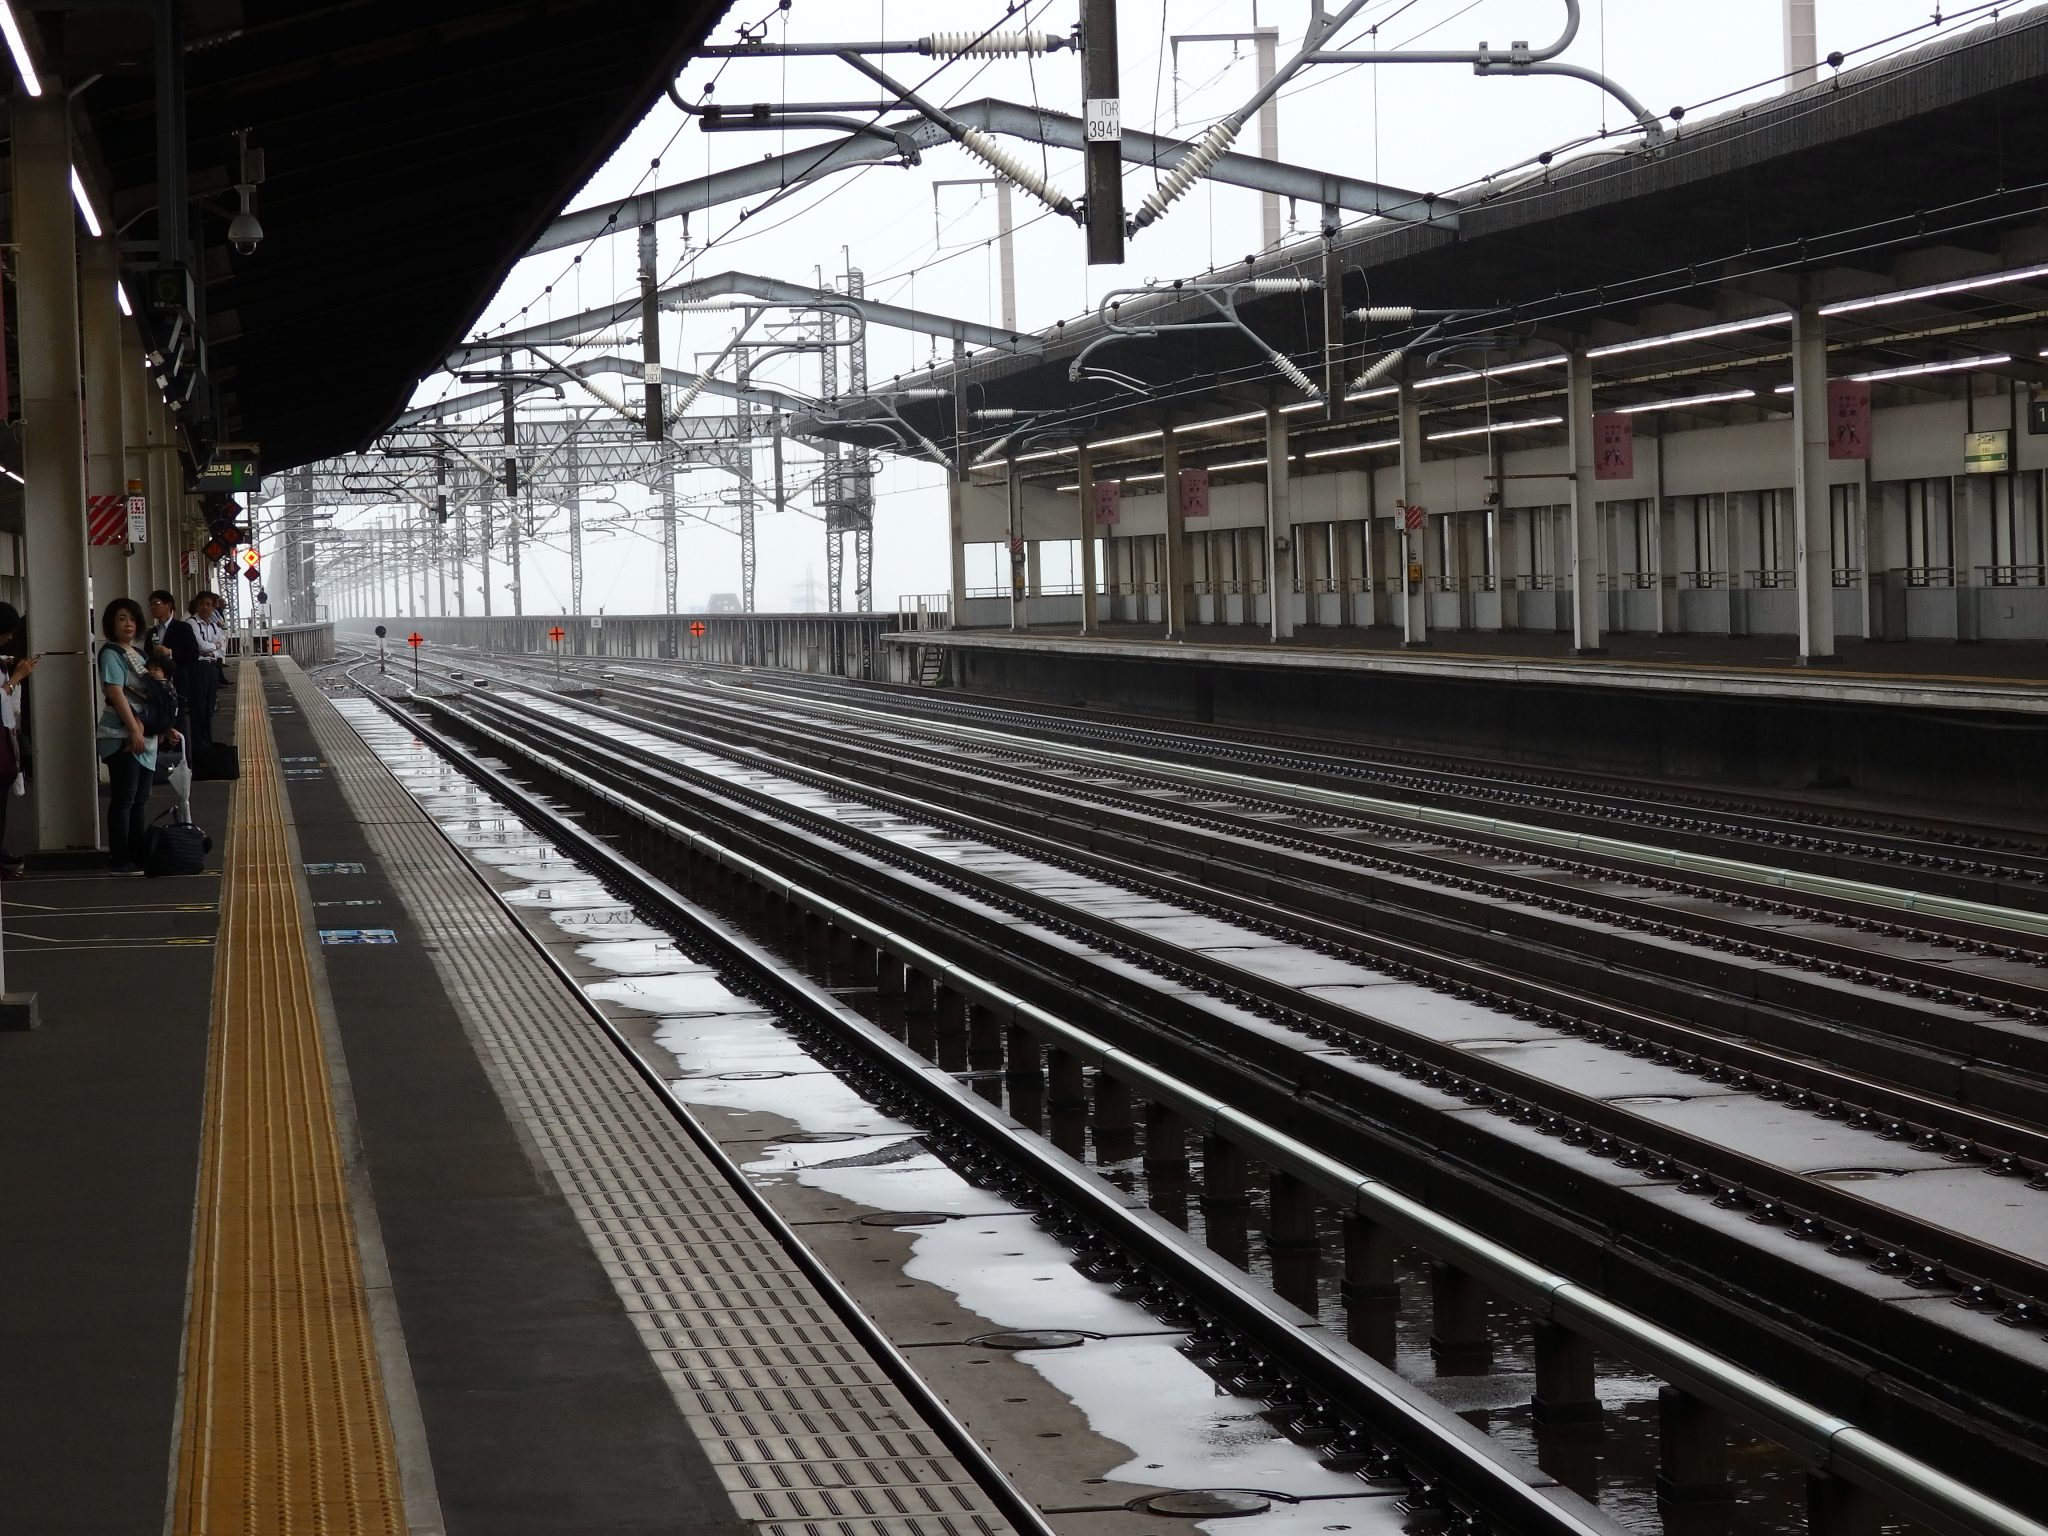 A view in a Japanese railway station looking down the tracks, no trains in sight.